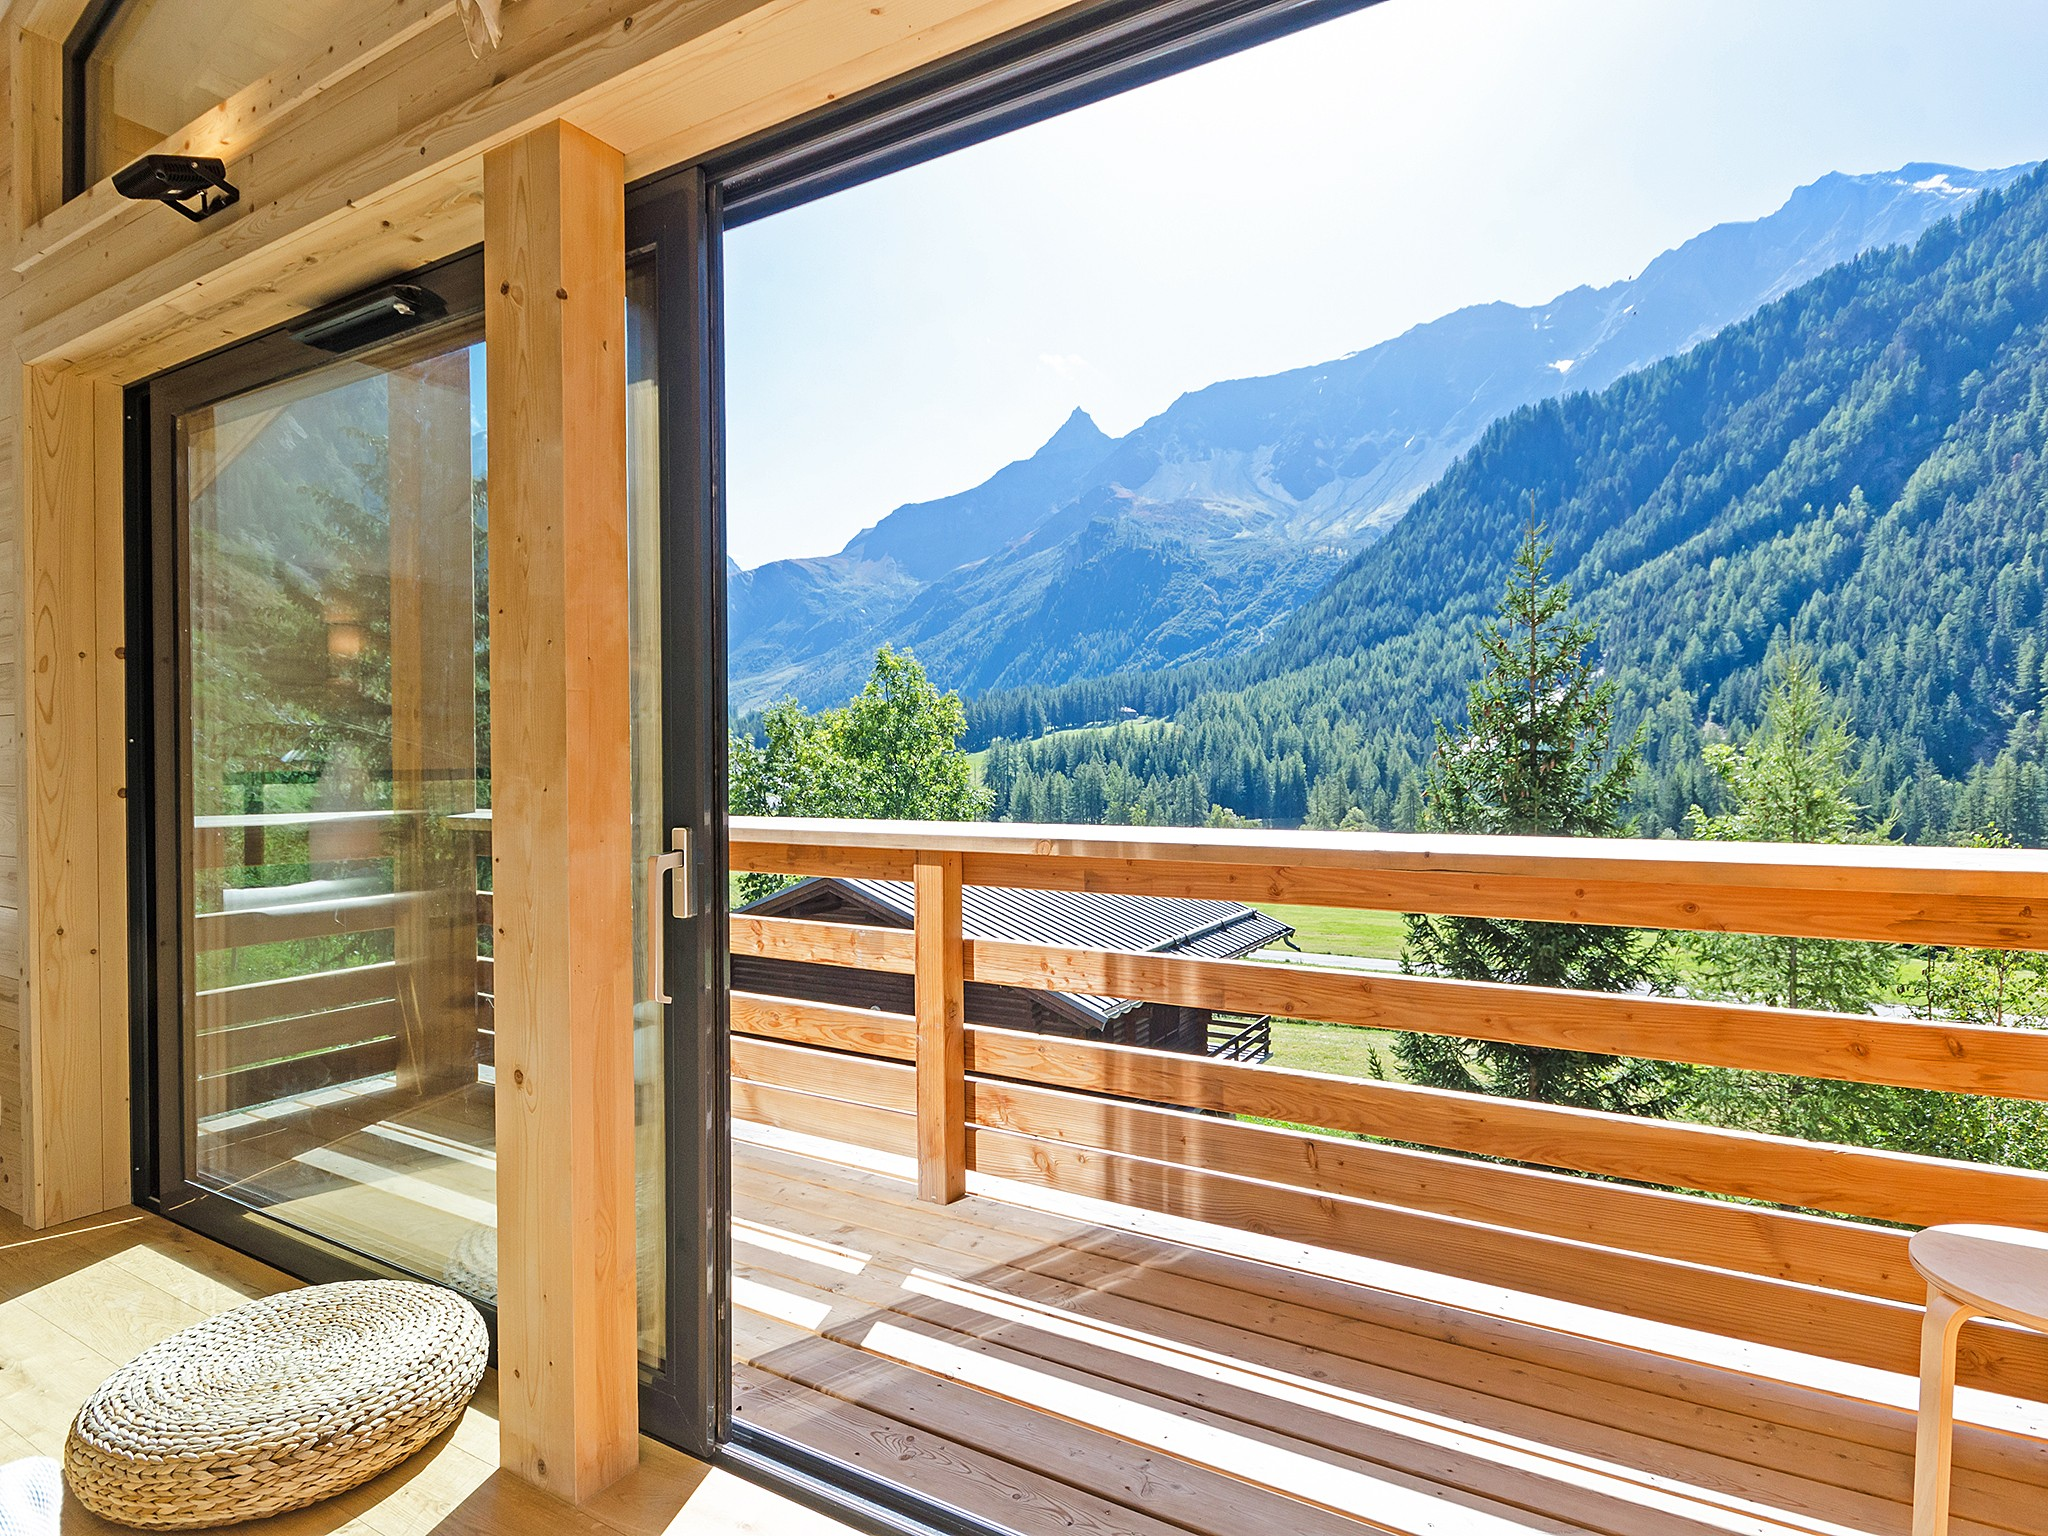 Chalet Olympe - panoramic view